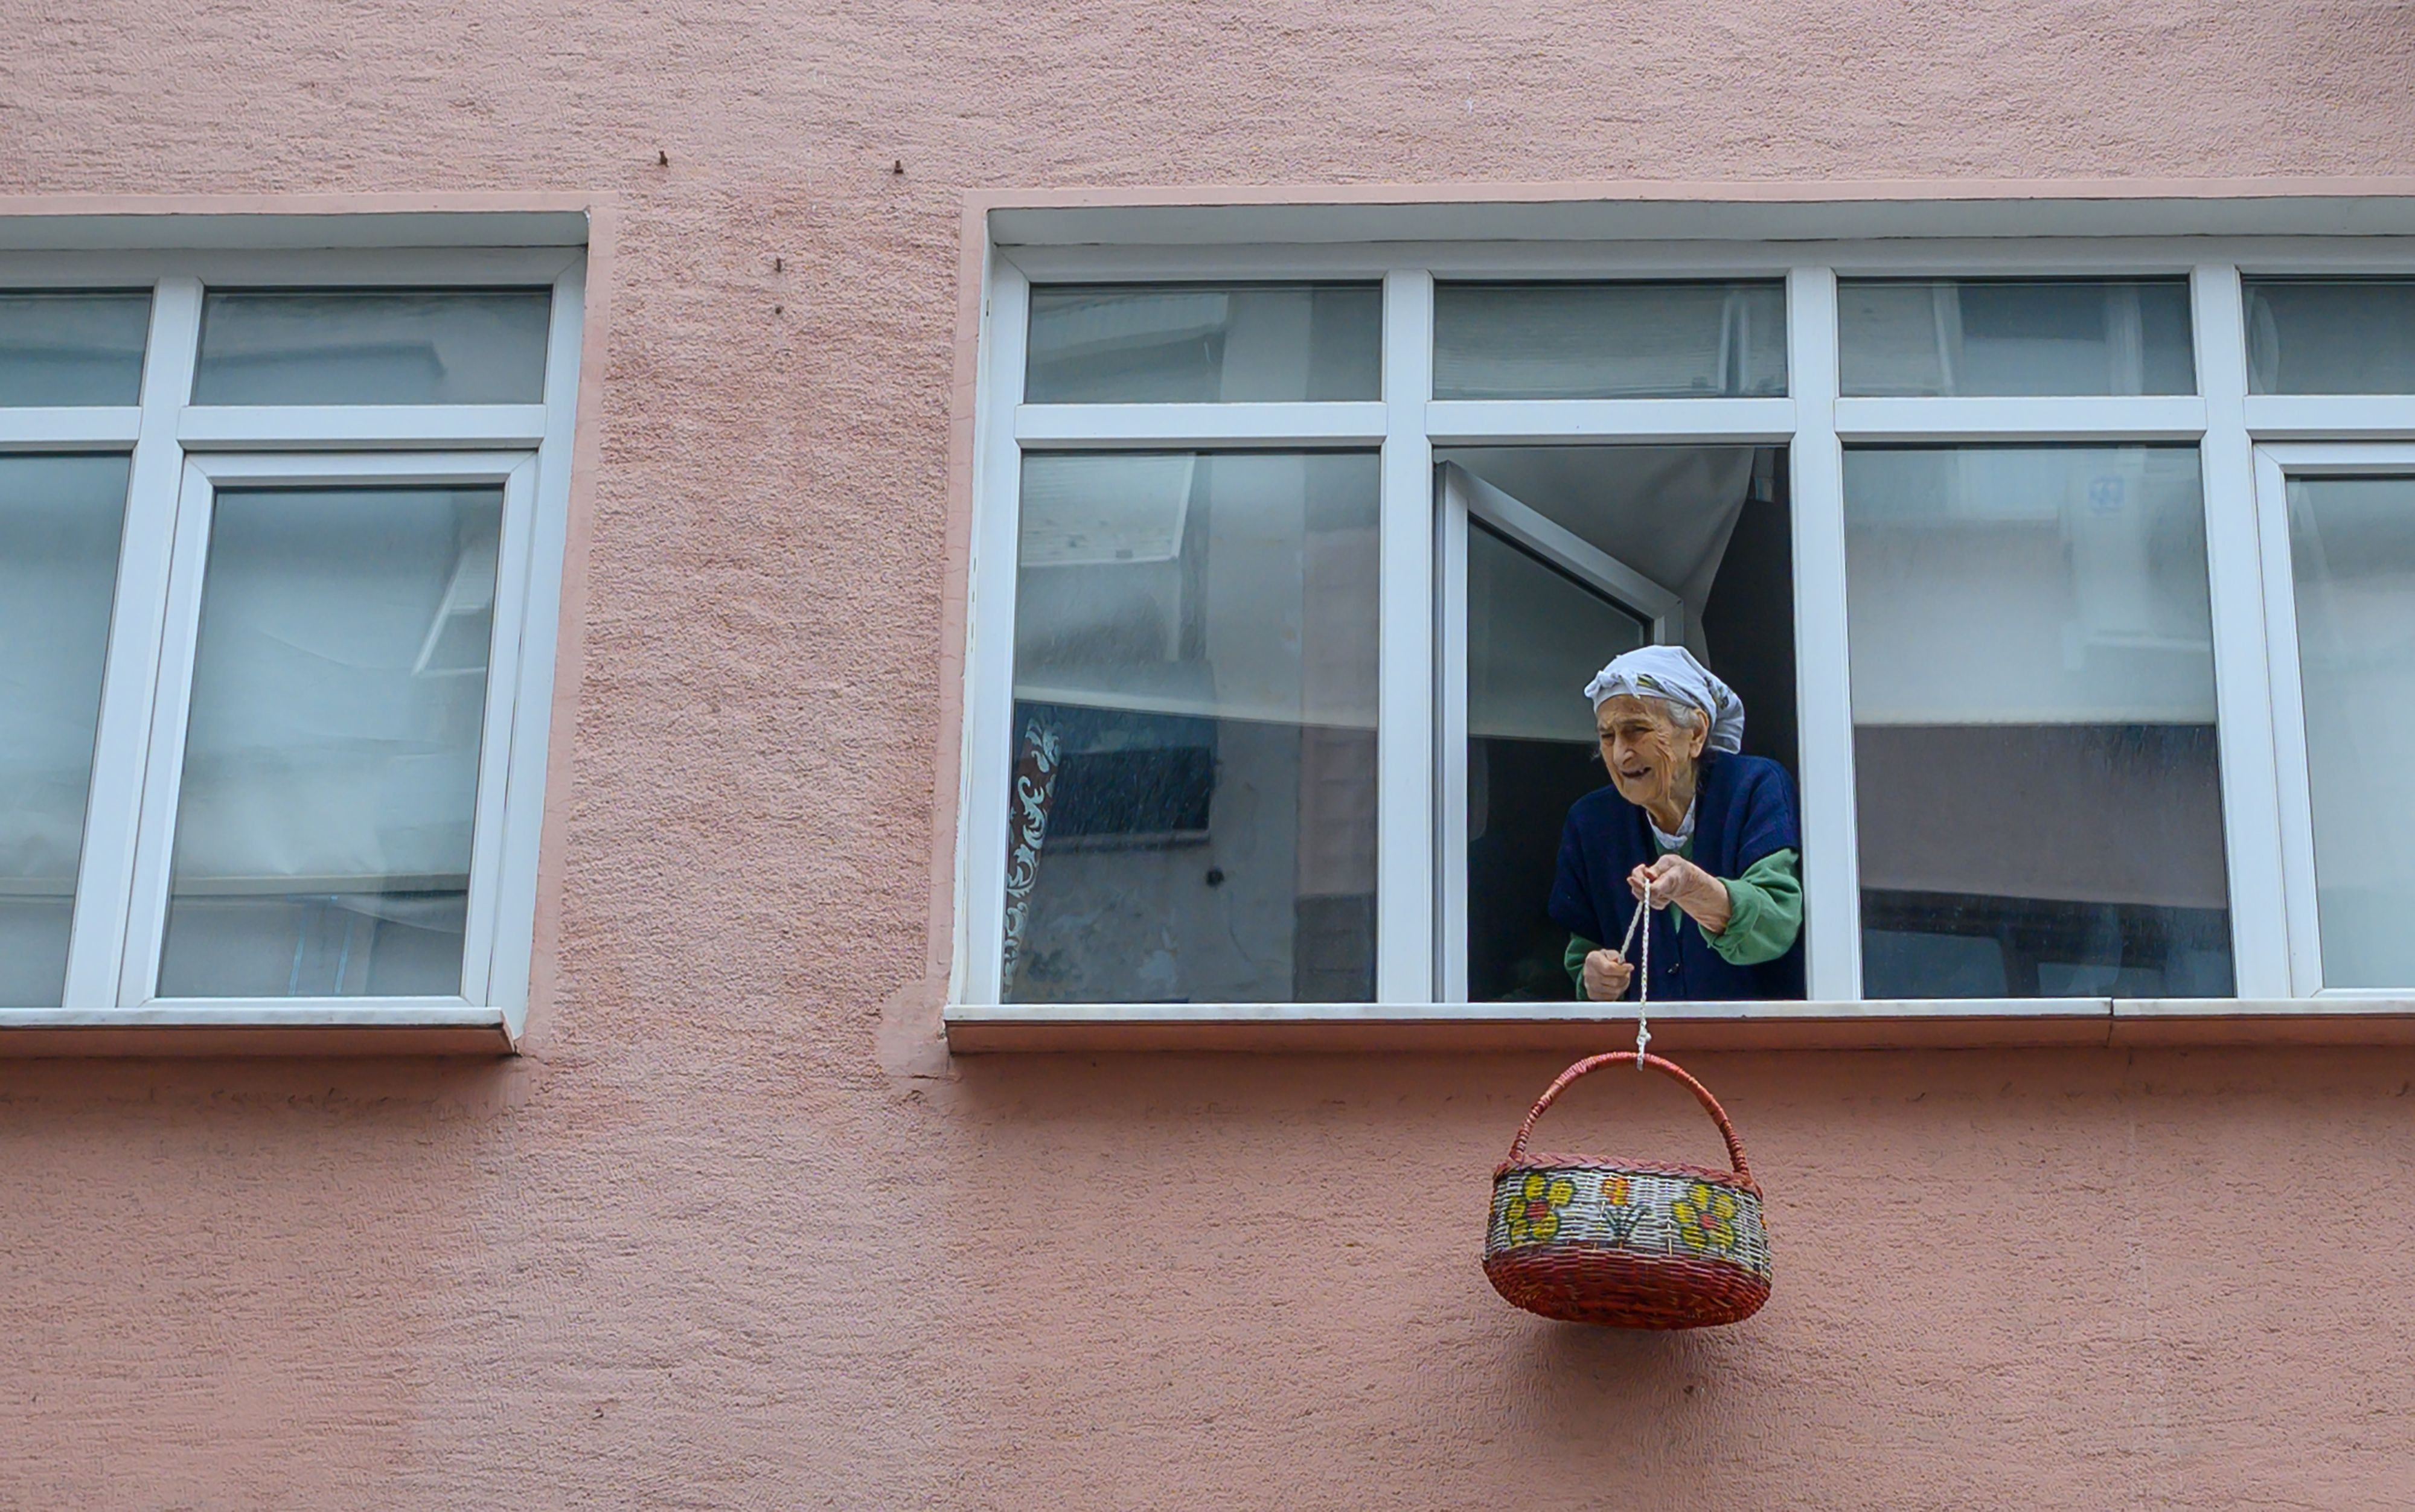 Sevim Özkan, an 85-year-old Turkish woman, waits with her basket for her neighbor (not pictured) to bring her medicine in Kadıköy, Istanbul, Monday, March 23, 2020. (AFP Photo)